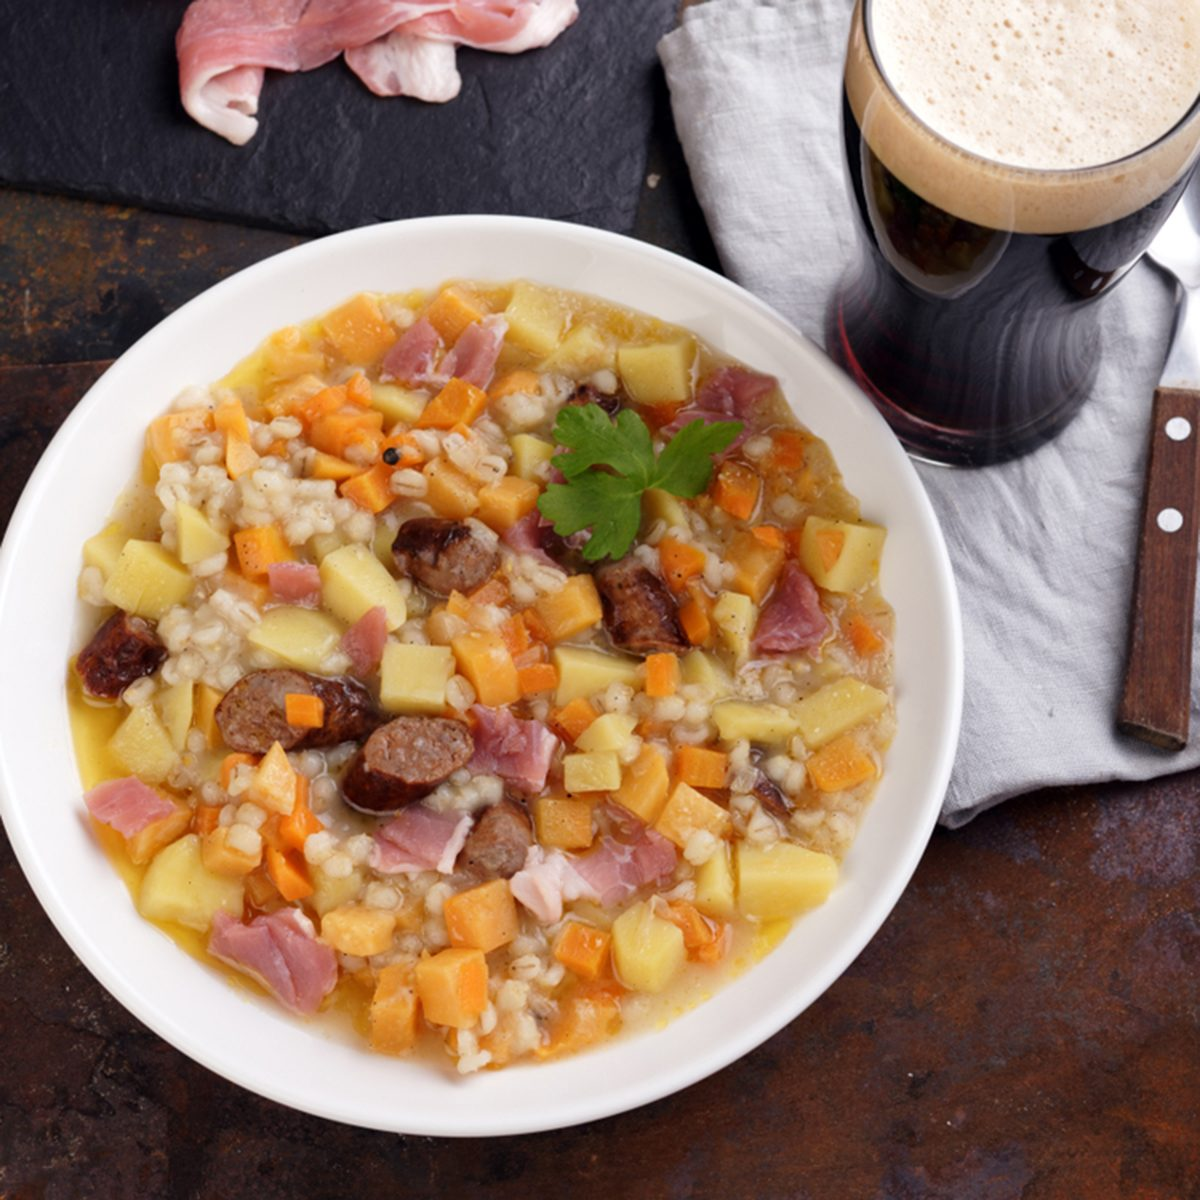 Traditional Irish dish Dublin coddle with sausages and beer on a table; Shutterstock ID 767524477